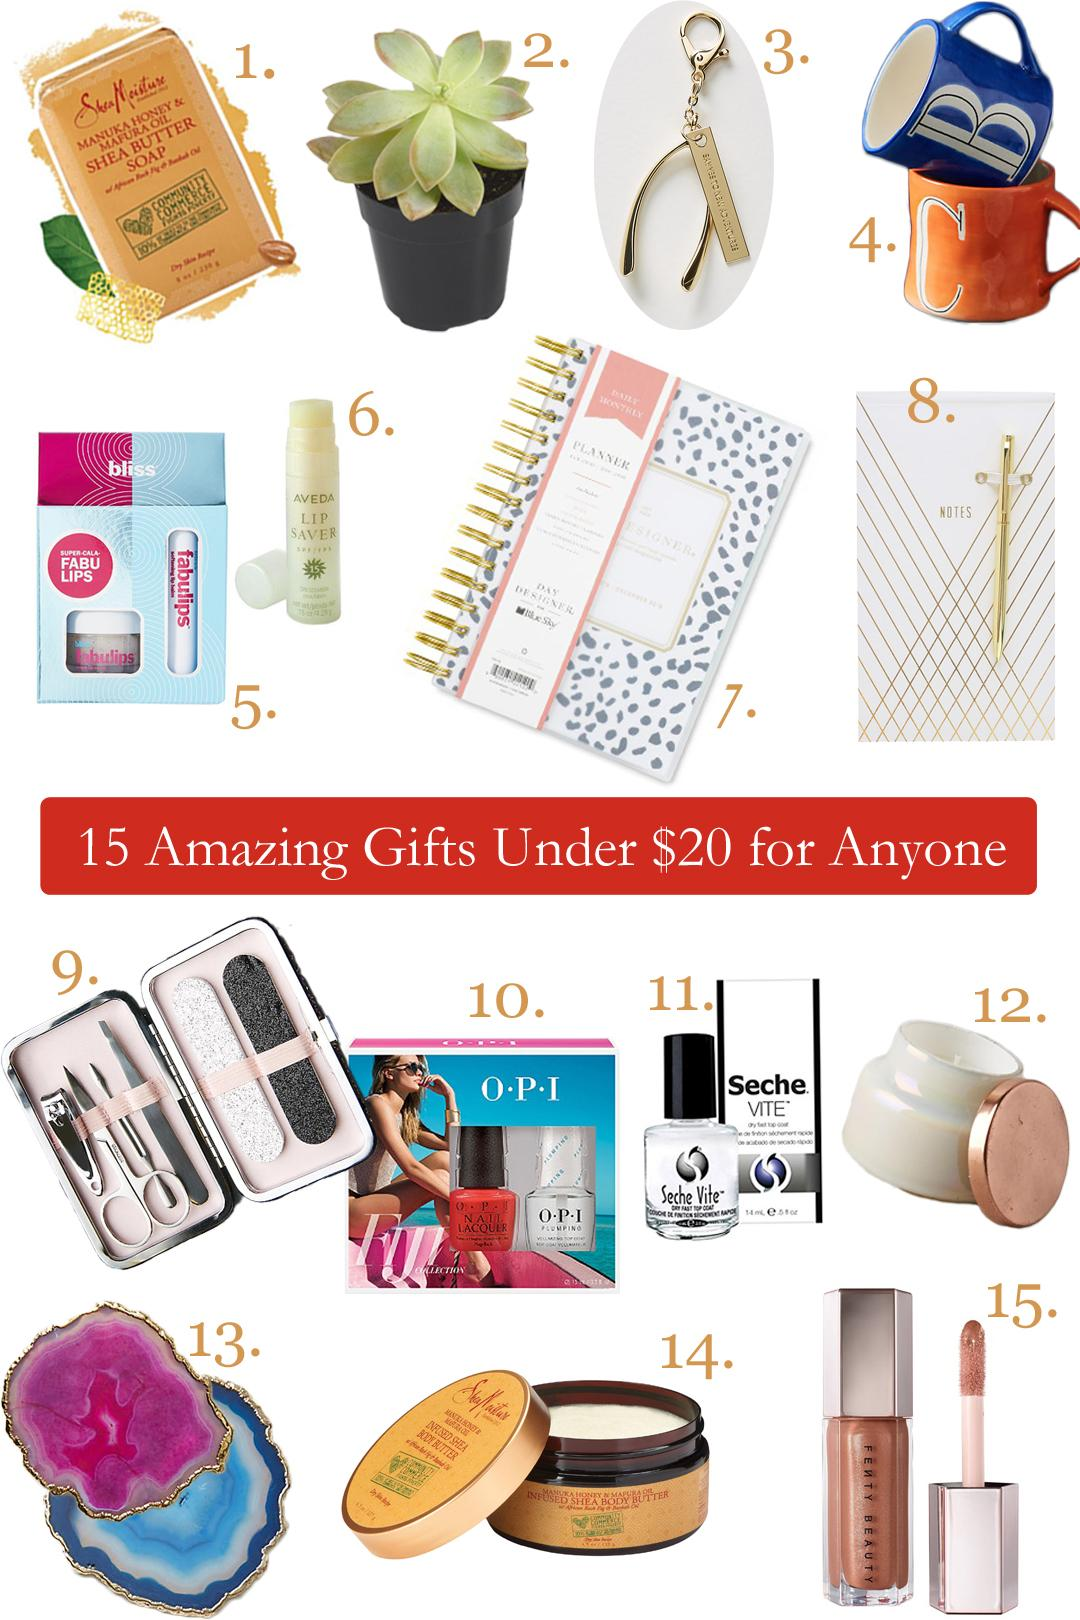 15 Last-Minute Gifts Under $20 For Anyone